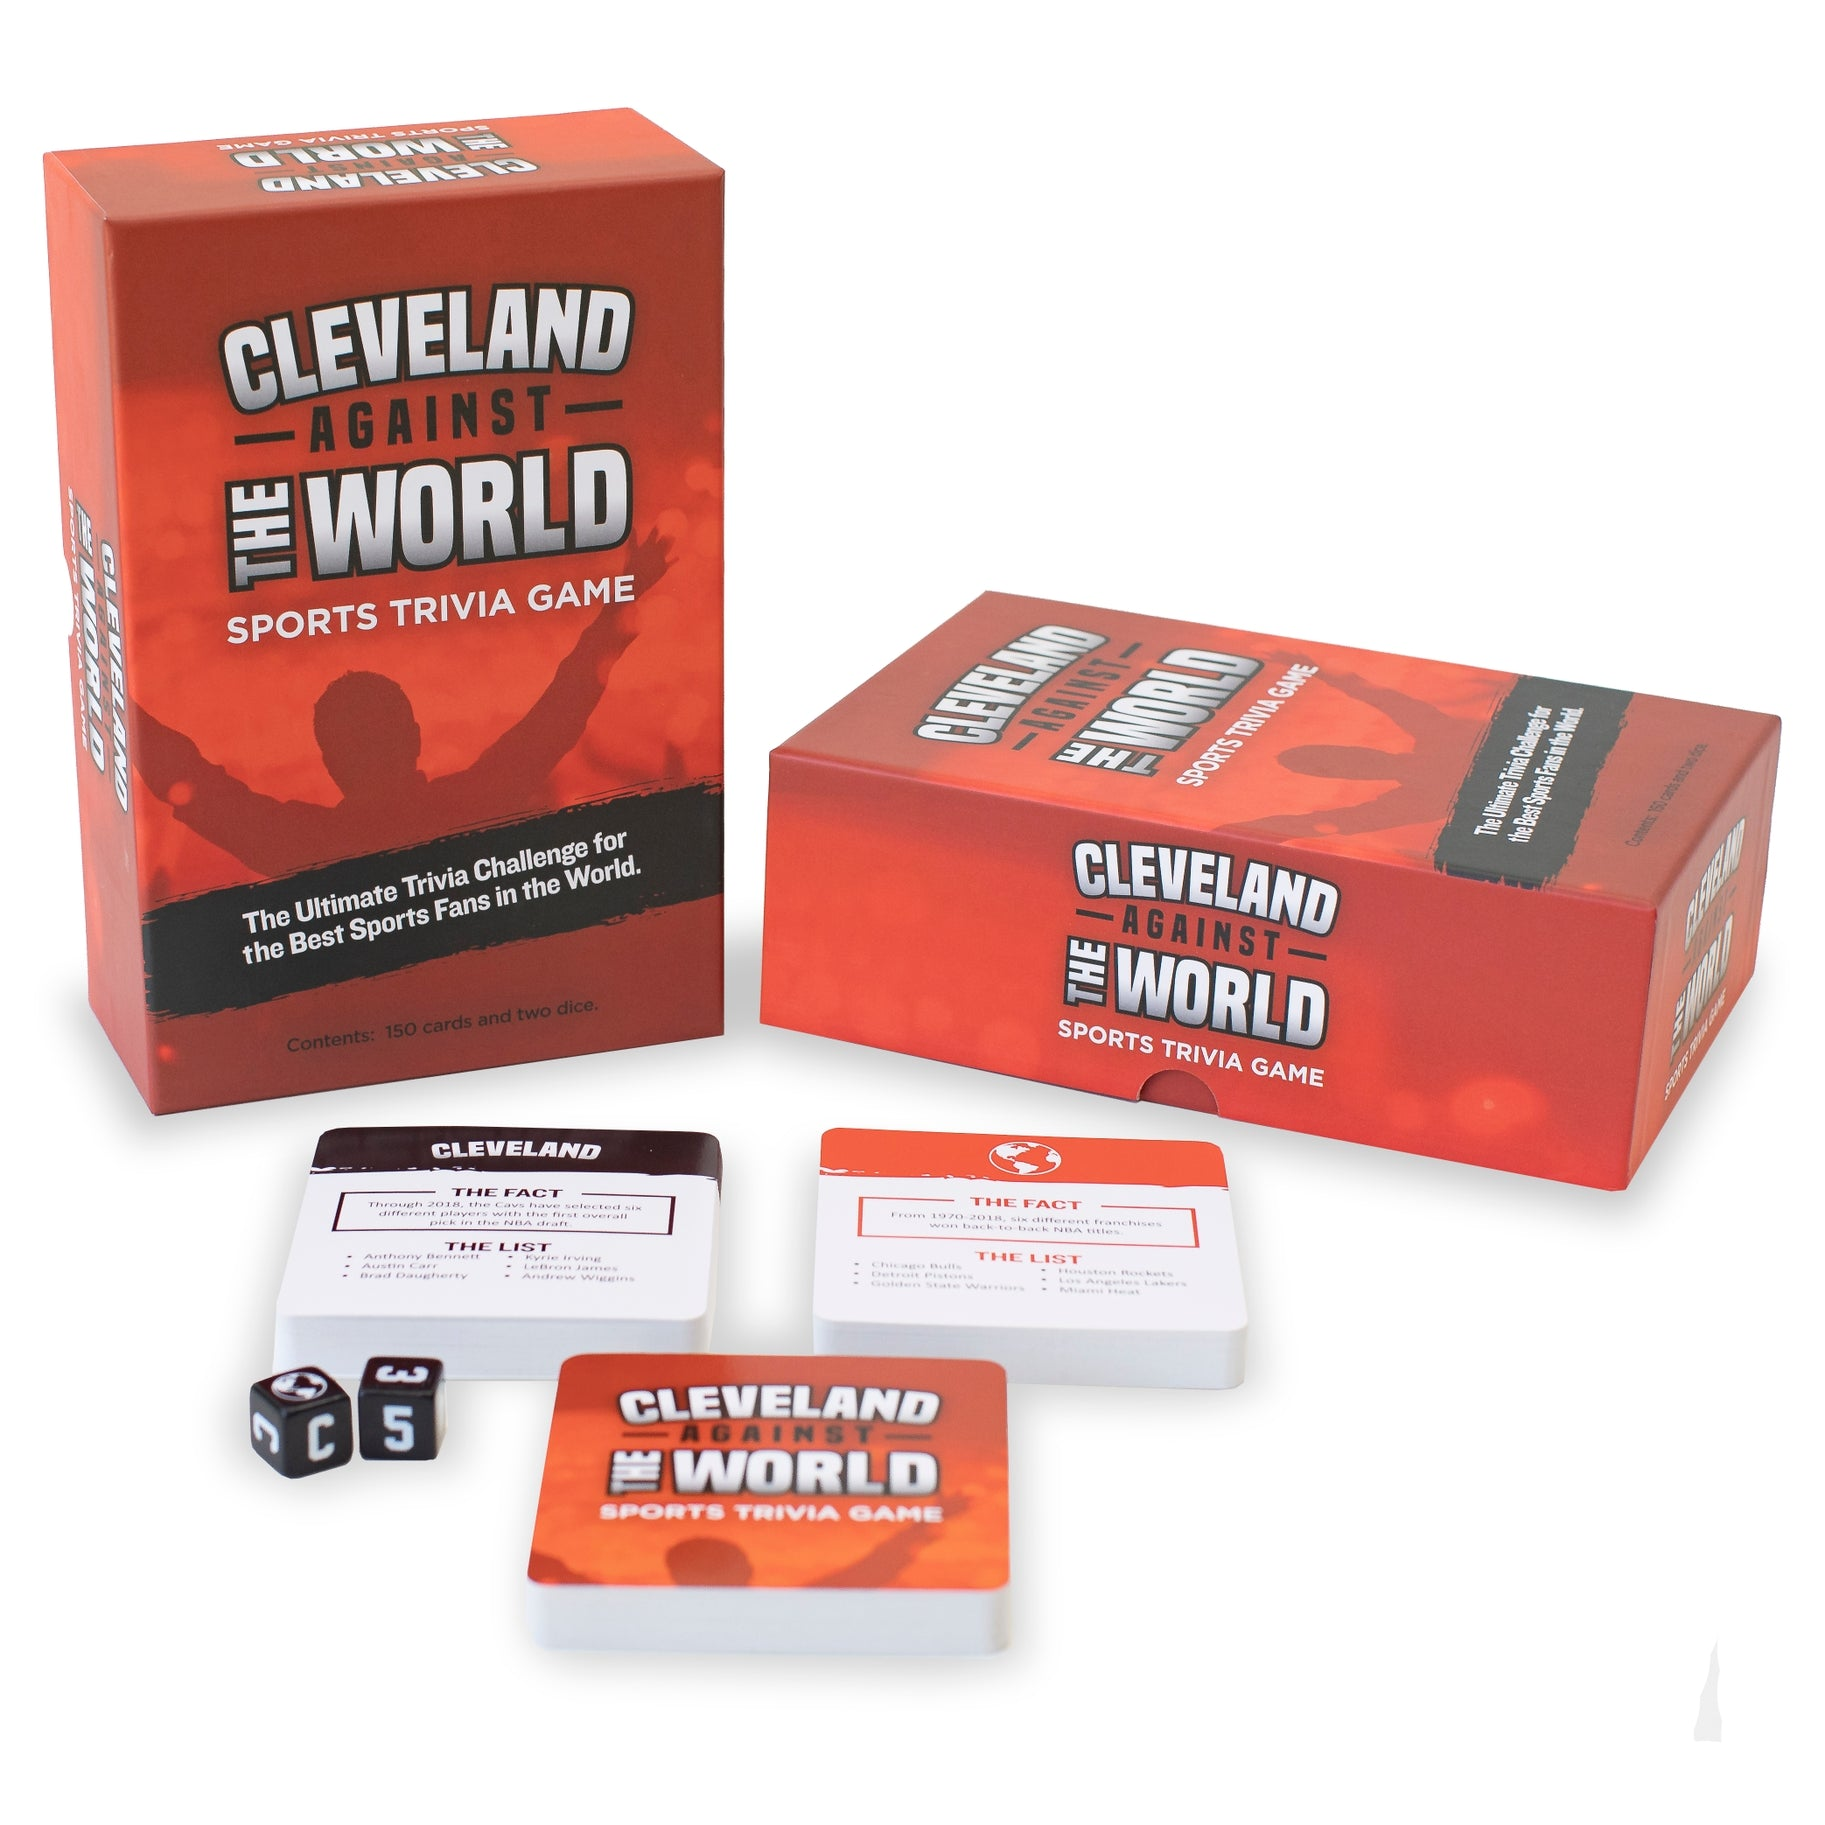 Cleveland Against the World Trivia Game